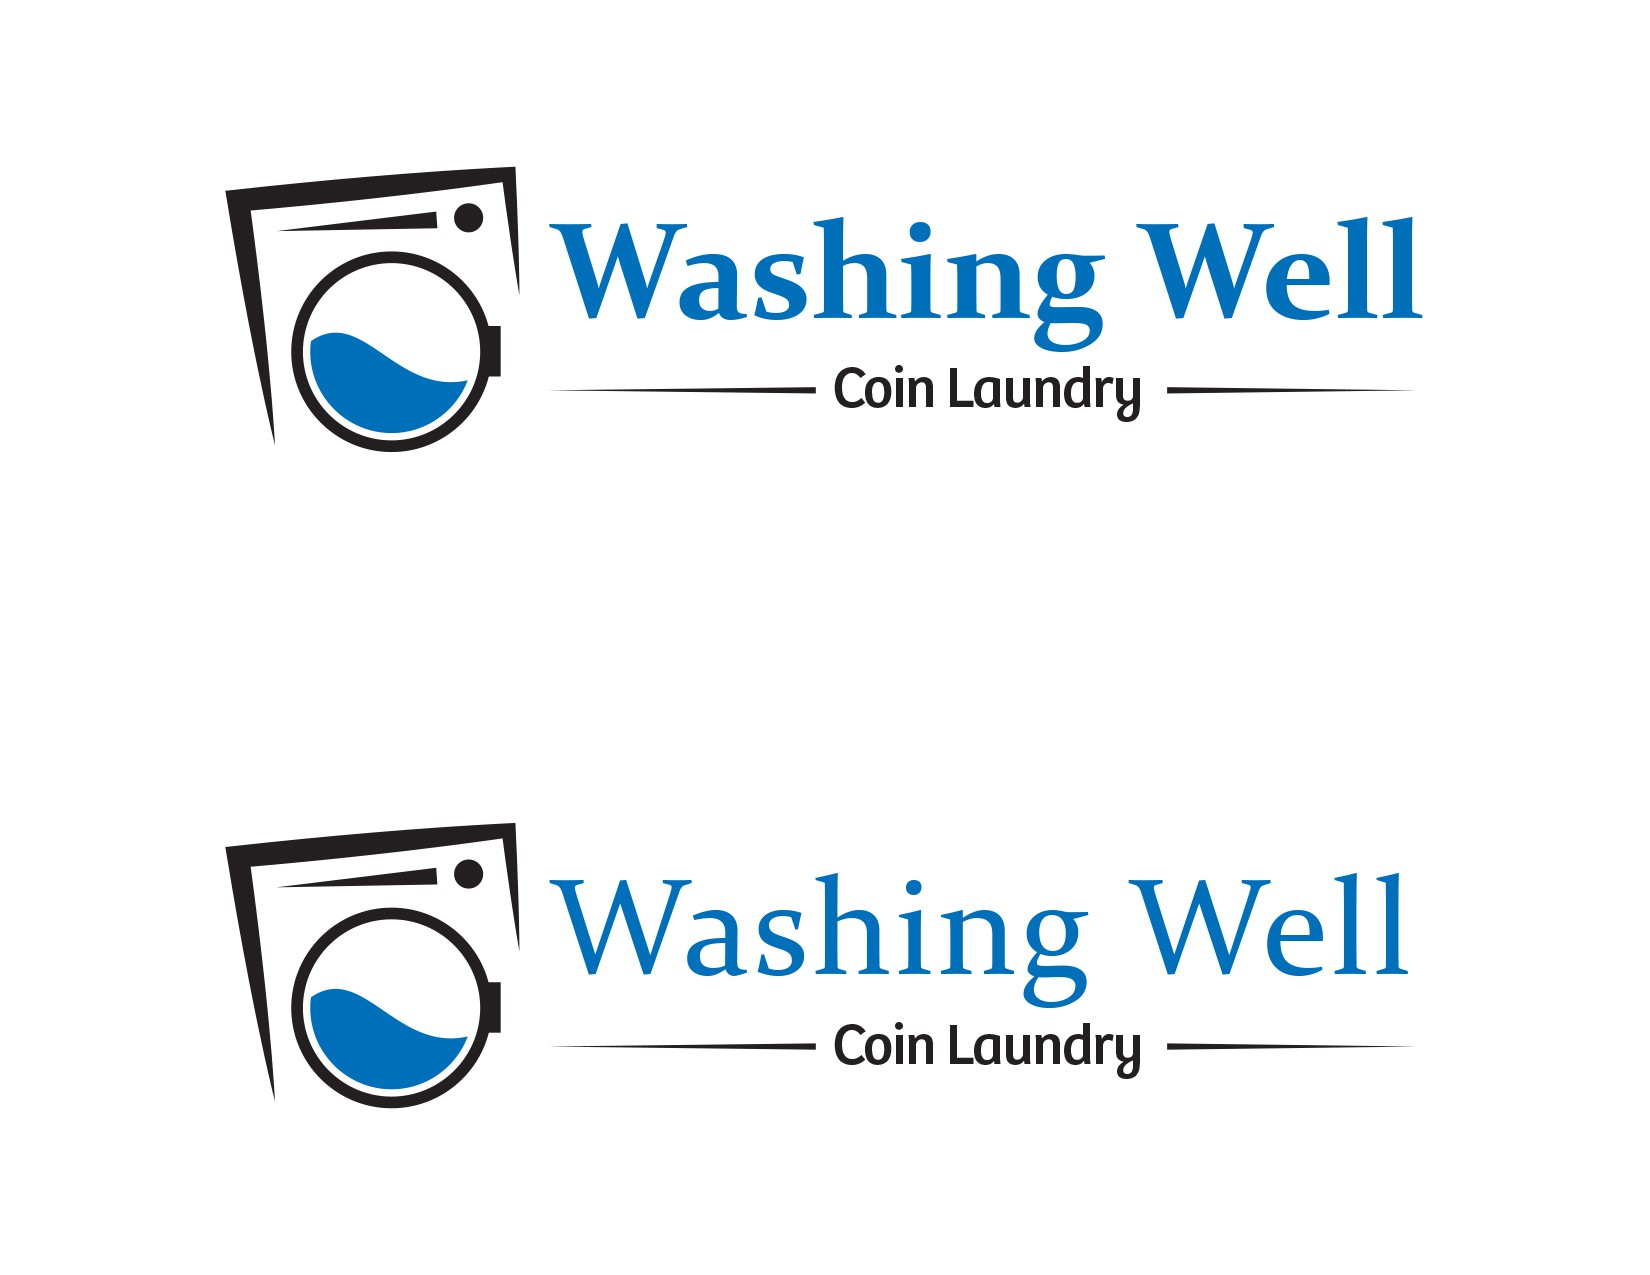 Create a winning logo design for the  Washing Well